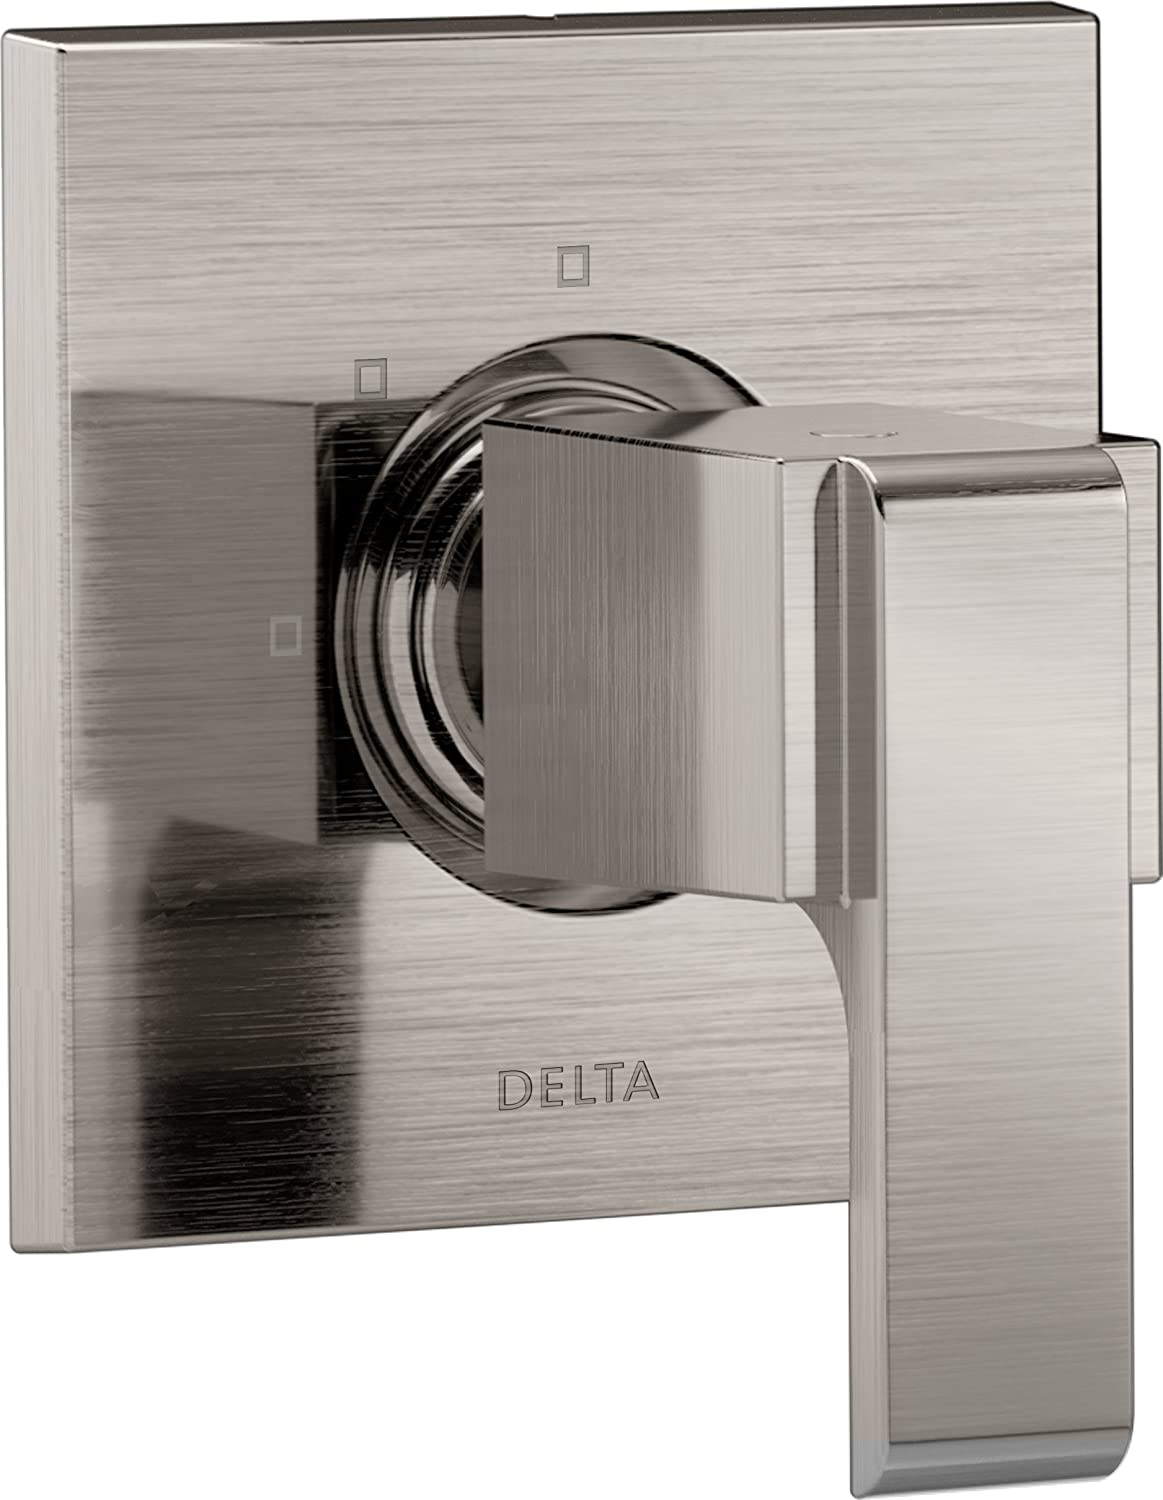 Delta Faucet Delta T11867-SS Ara 3-Setting Digreener, Stainless